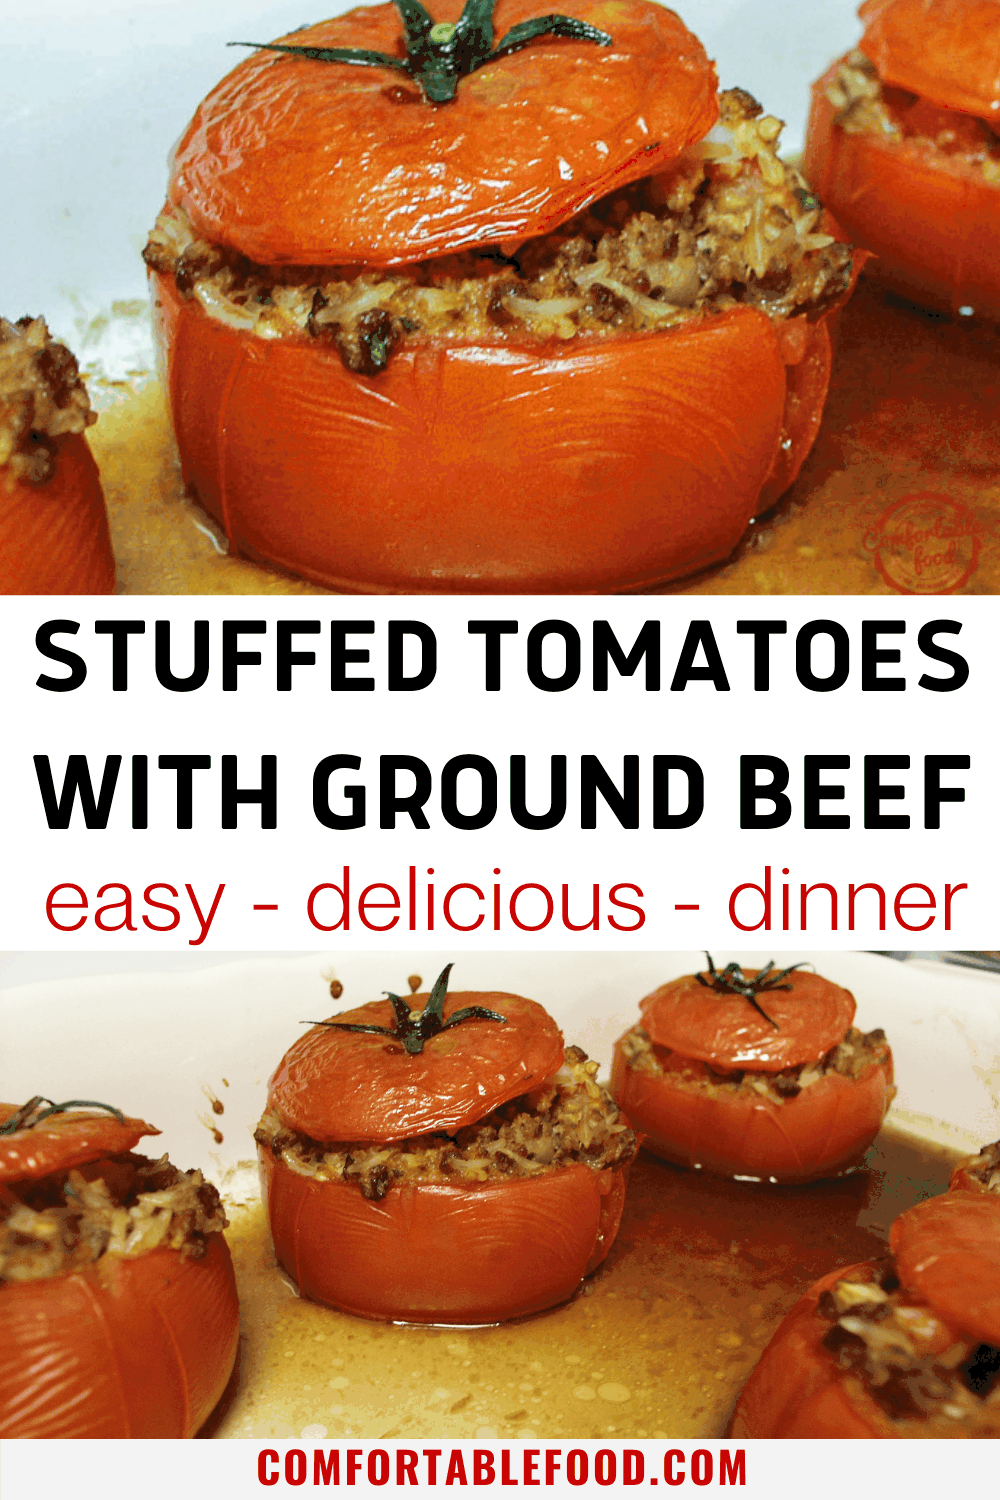 Juicy stuffed tomatoes with ground beef and rice in a pan